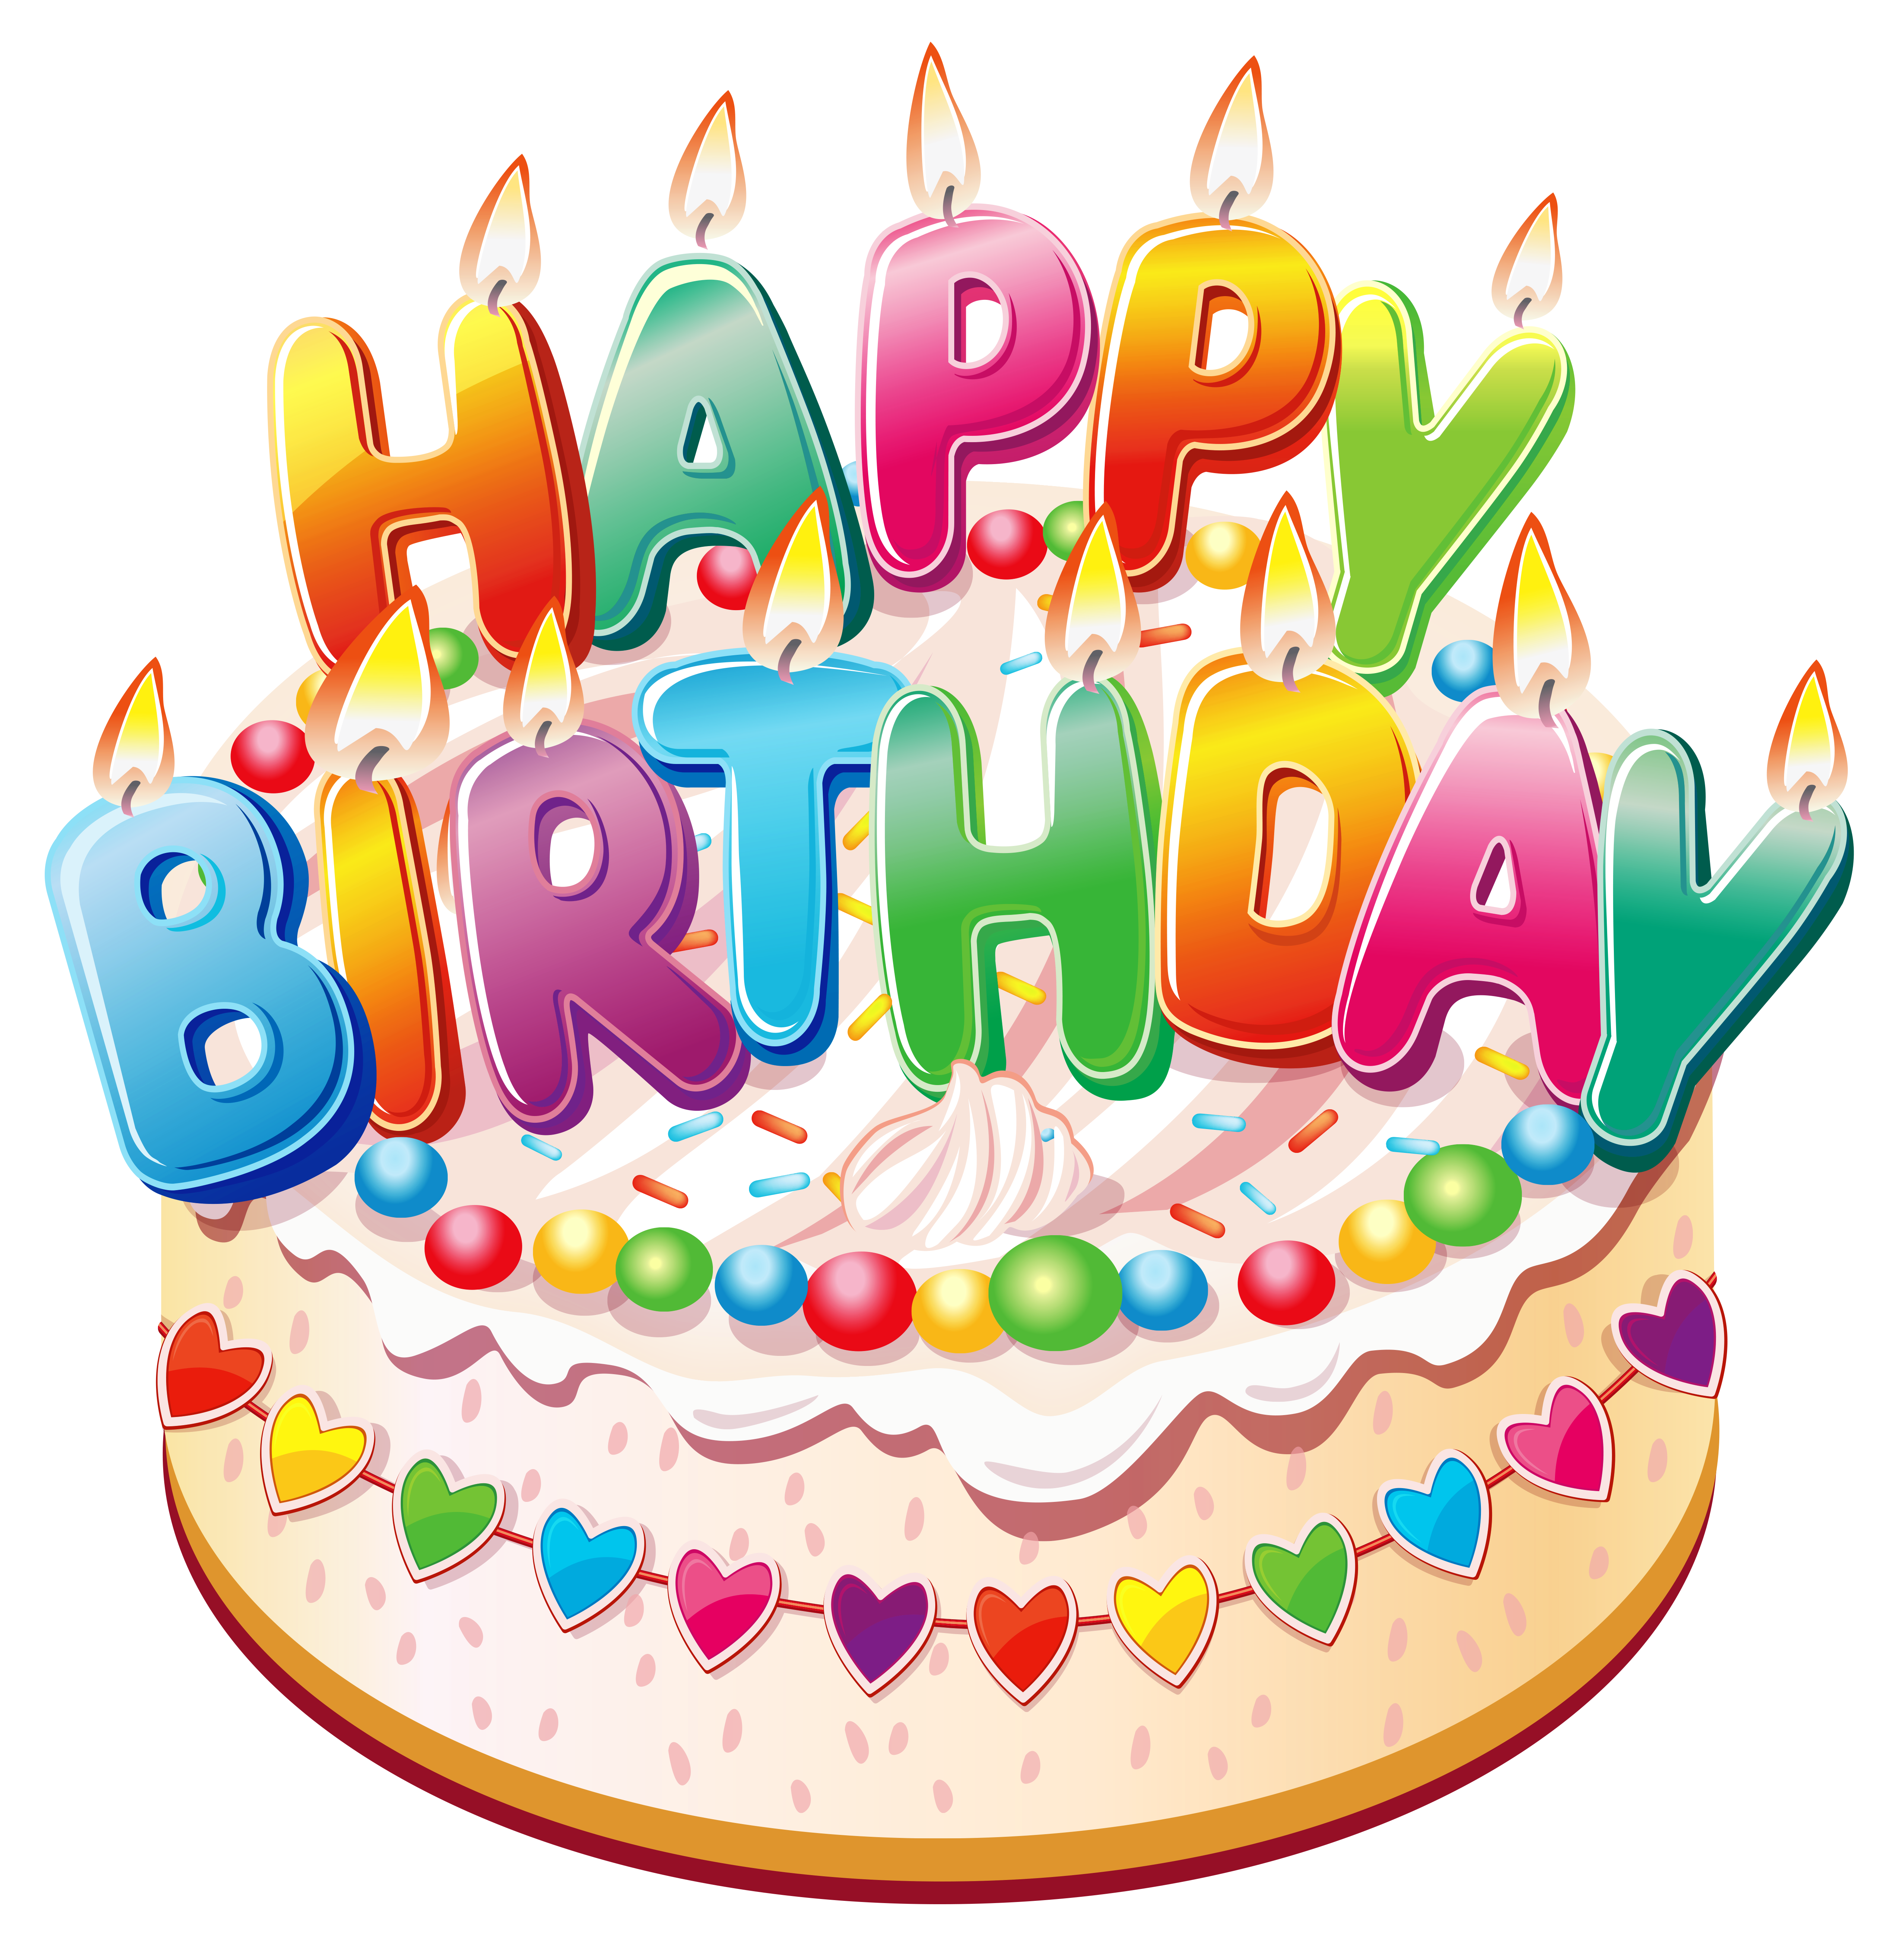 Clipart pictures of birthday .-Clipart pictures of birthday .-4